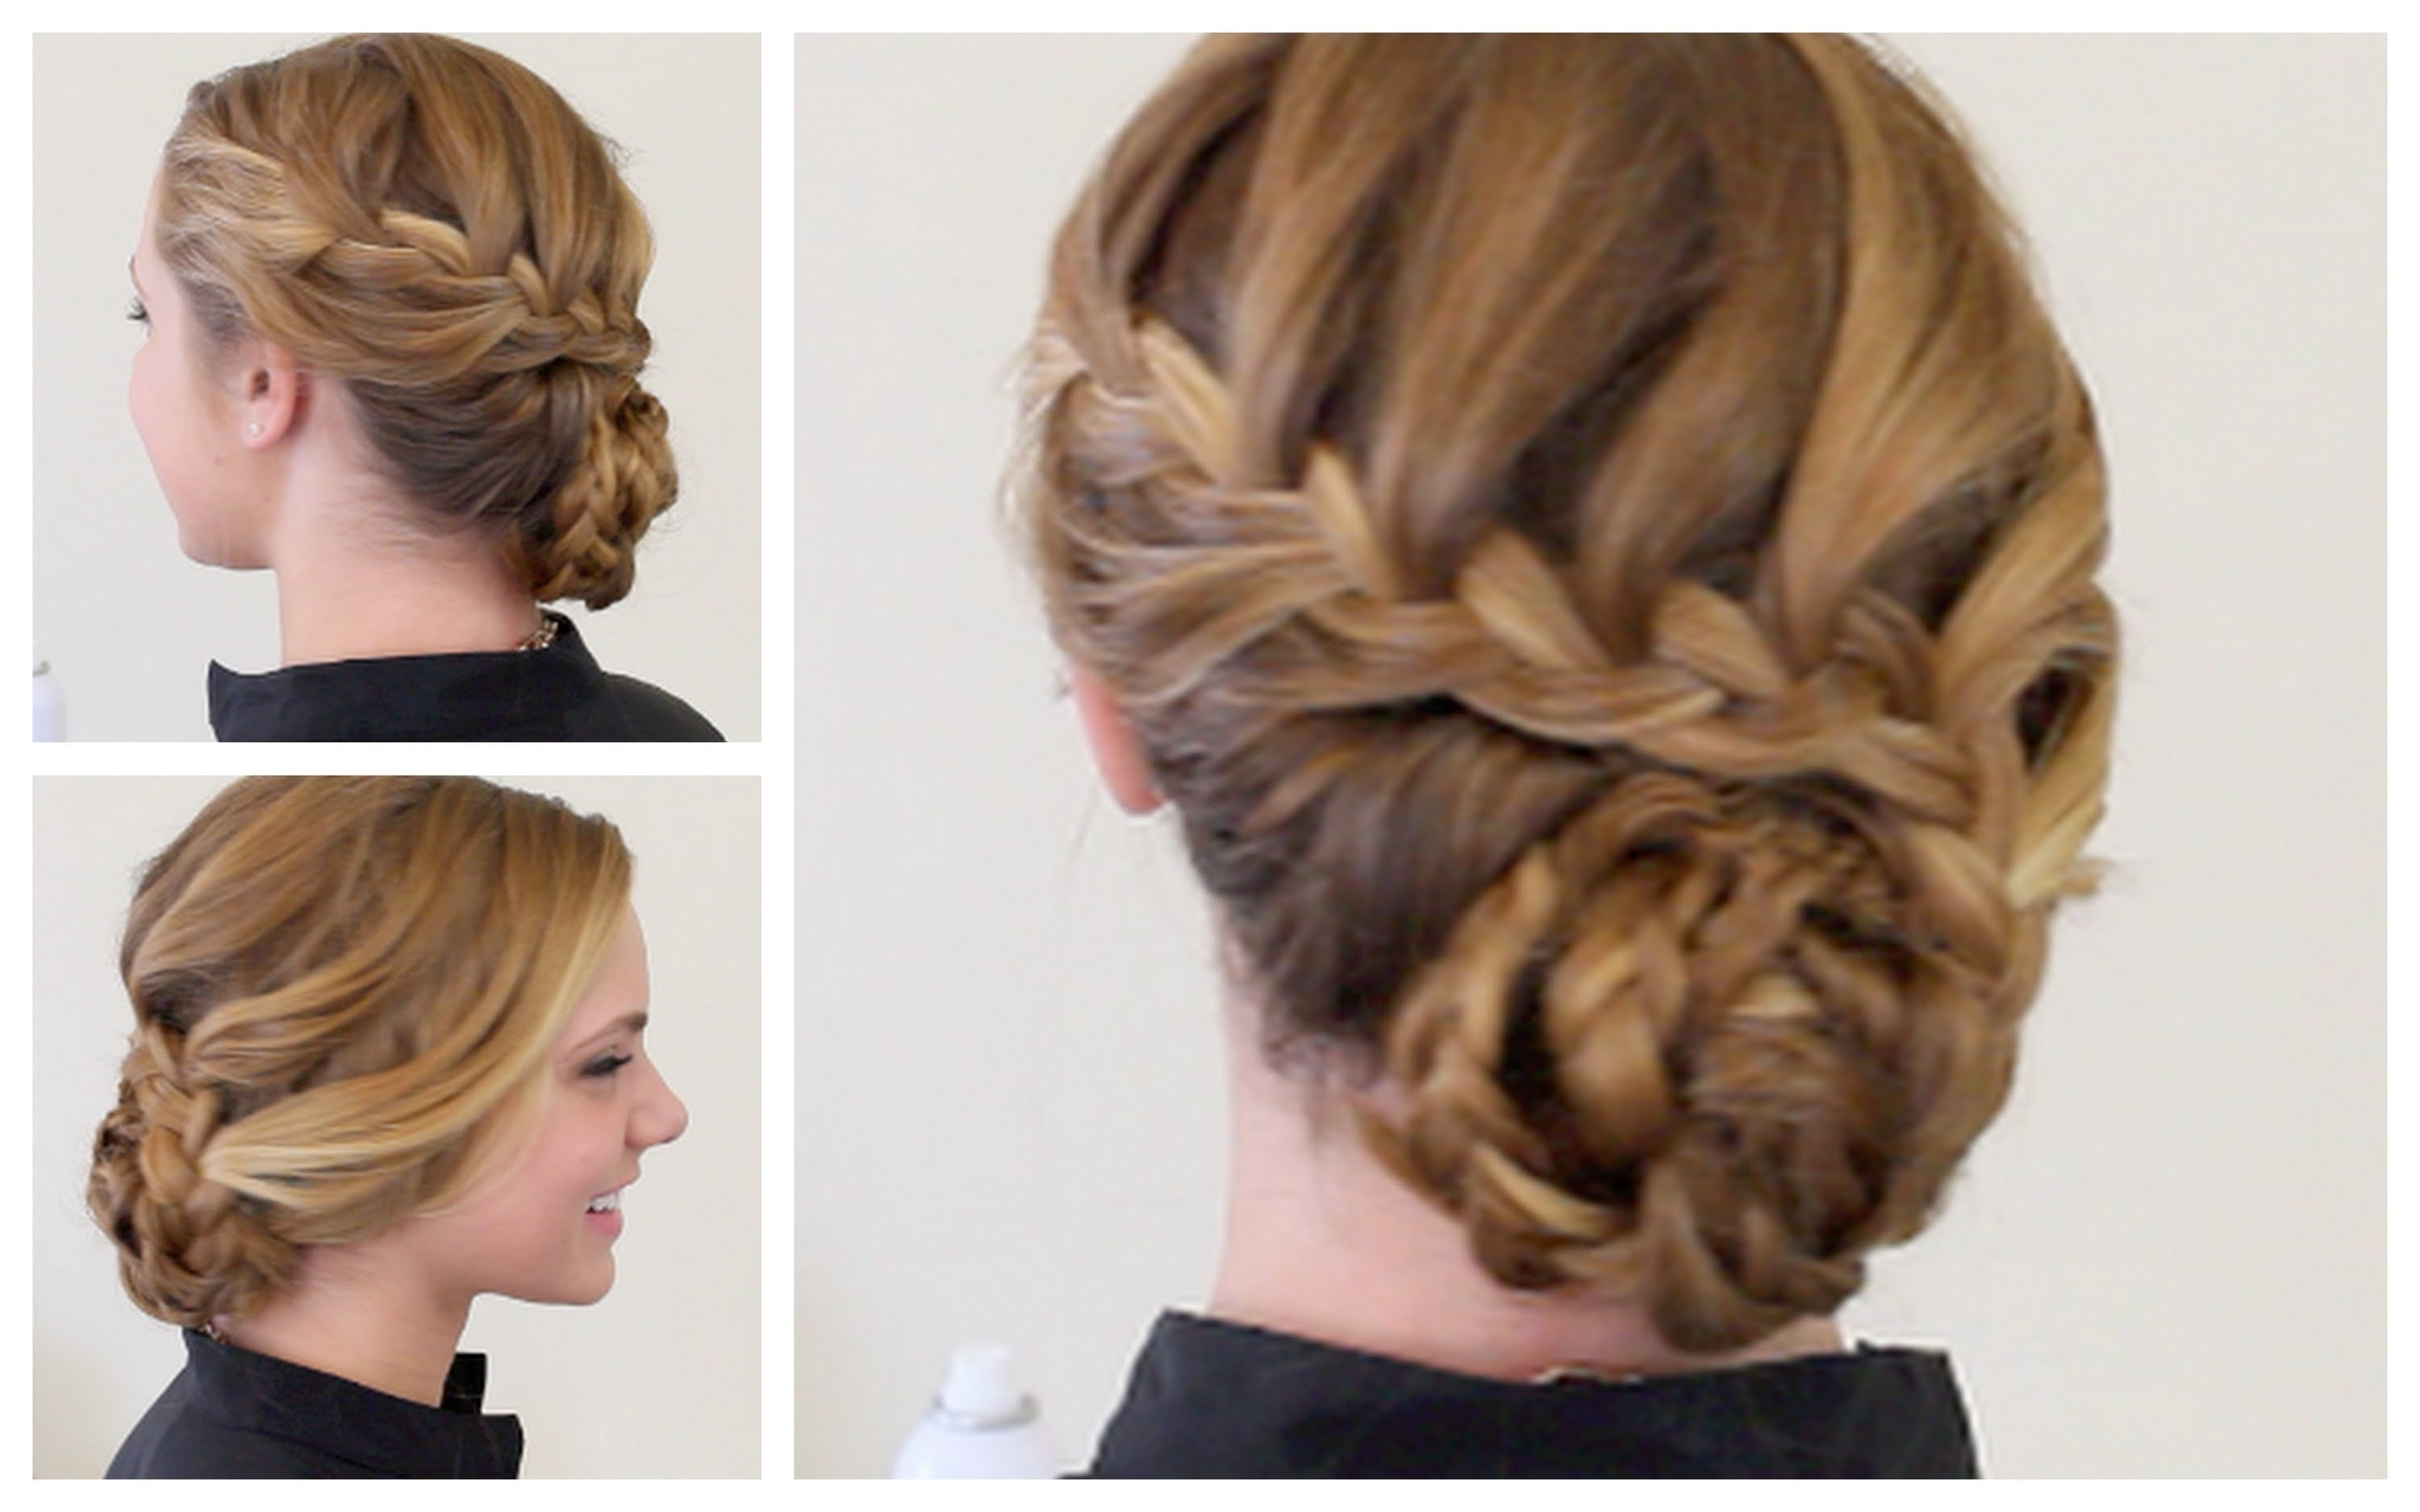 Updo Hairstyles For Prom Braided Formal Updo Youtube Regarding Fancy Updo Hairstyles (View 14 of 15)